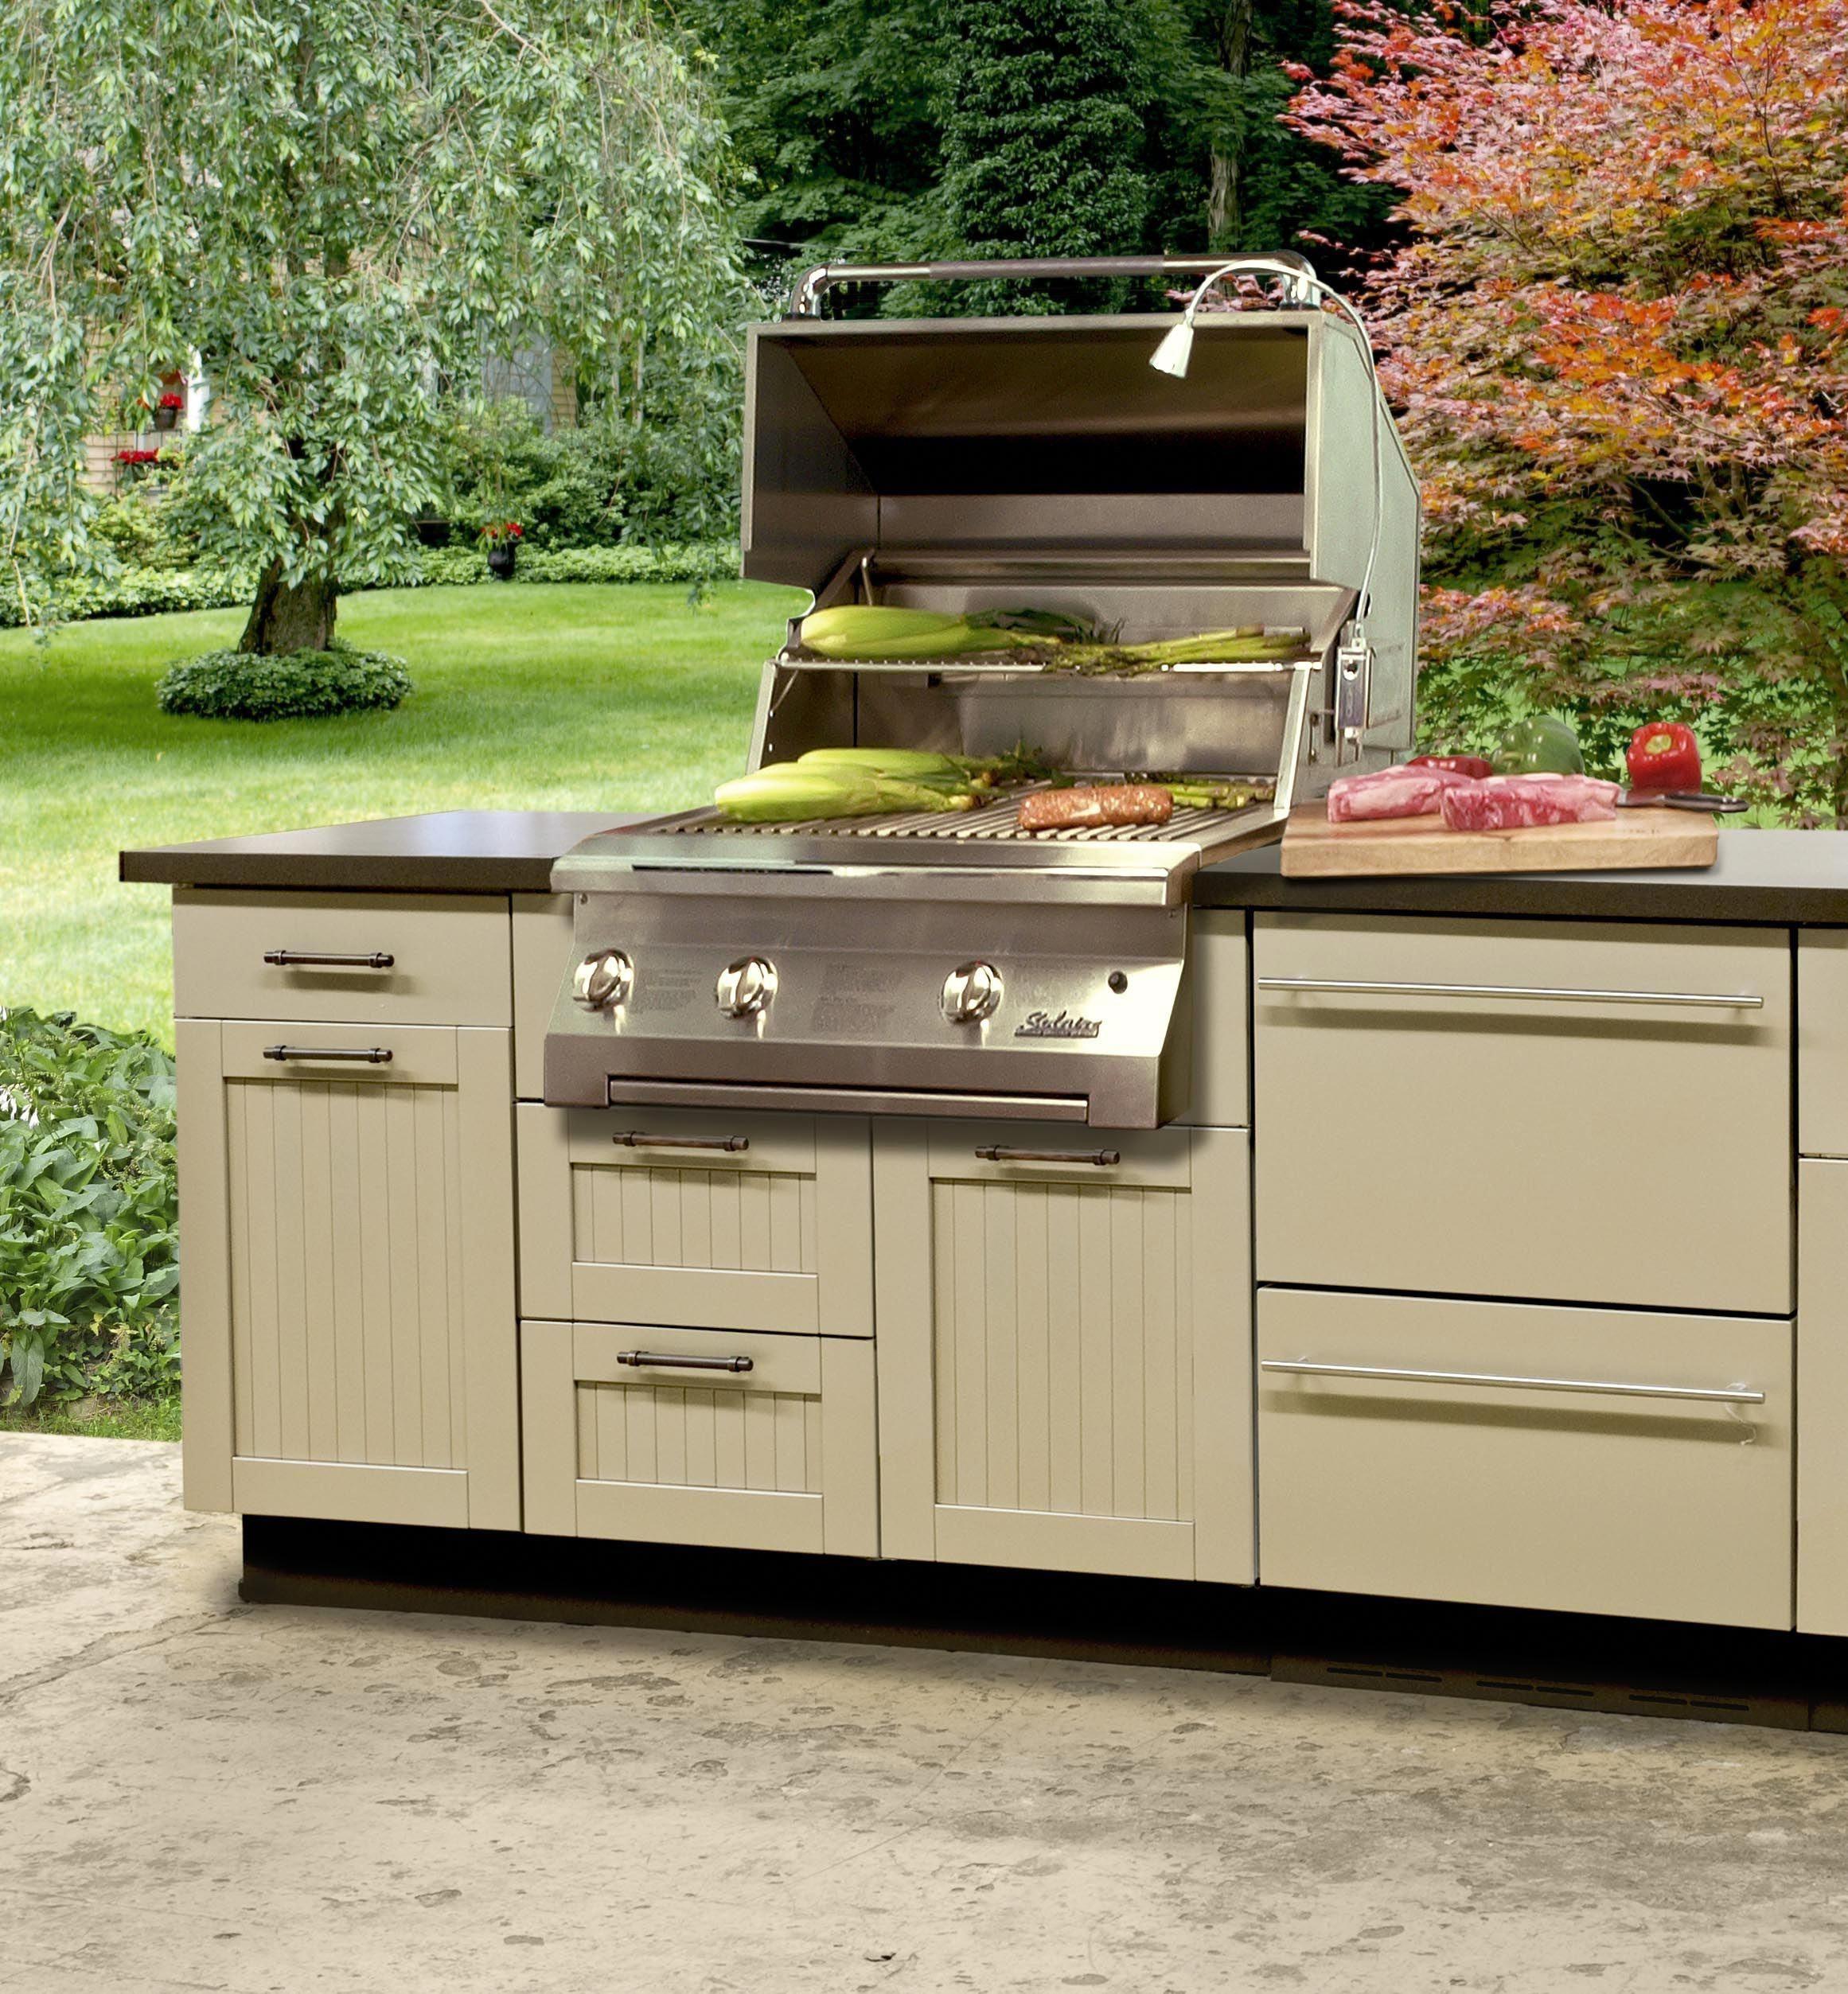 Awesome Best Outdoor Kitchen Ideas On A Budget Outdoor Kitchen Outdoor Kitchen Design Patio Kitchen